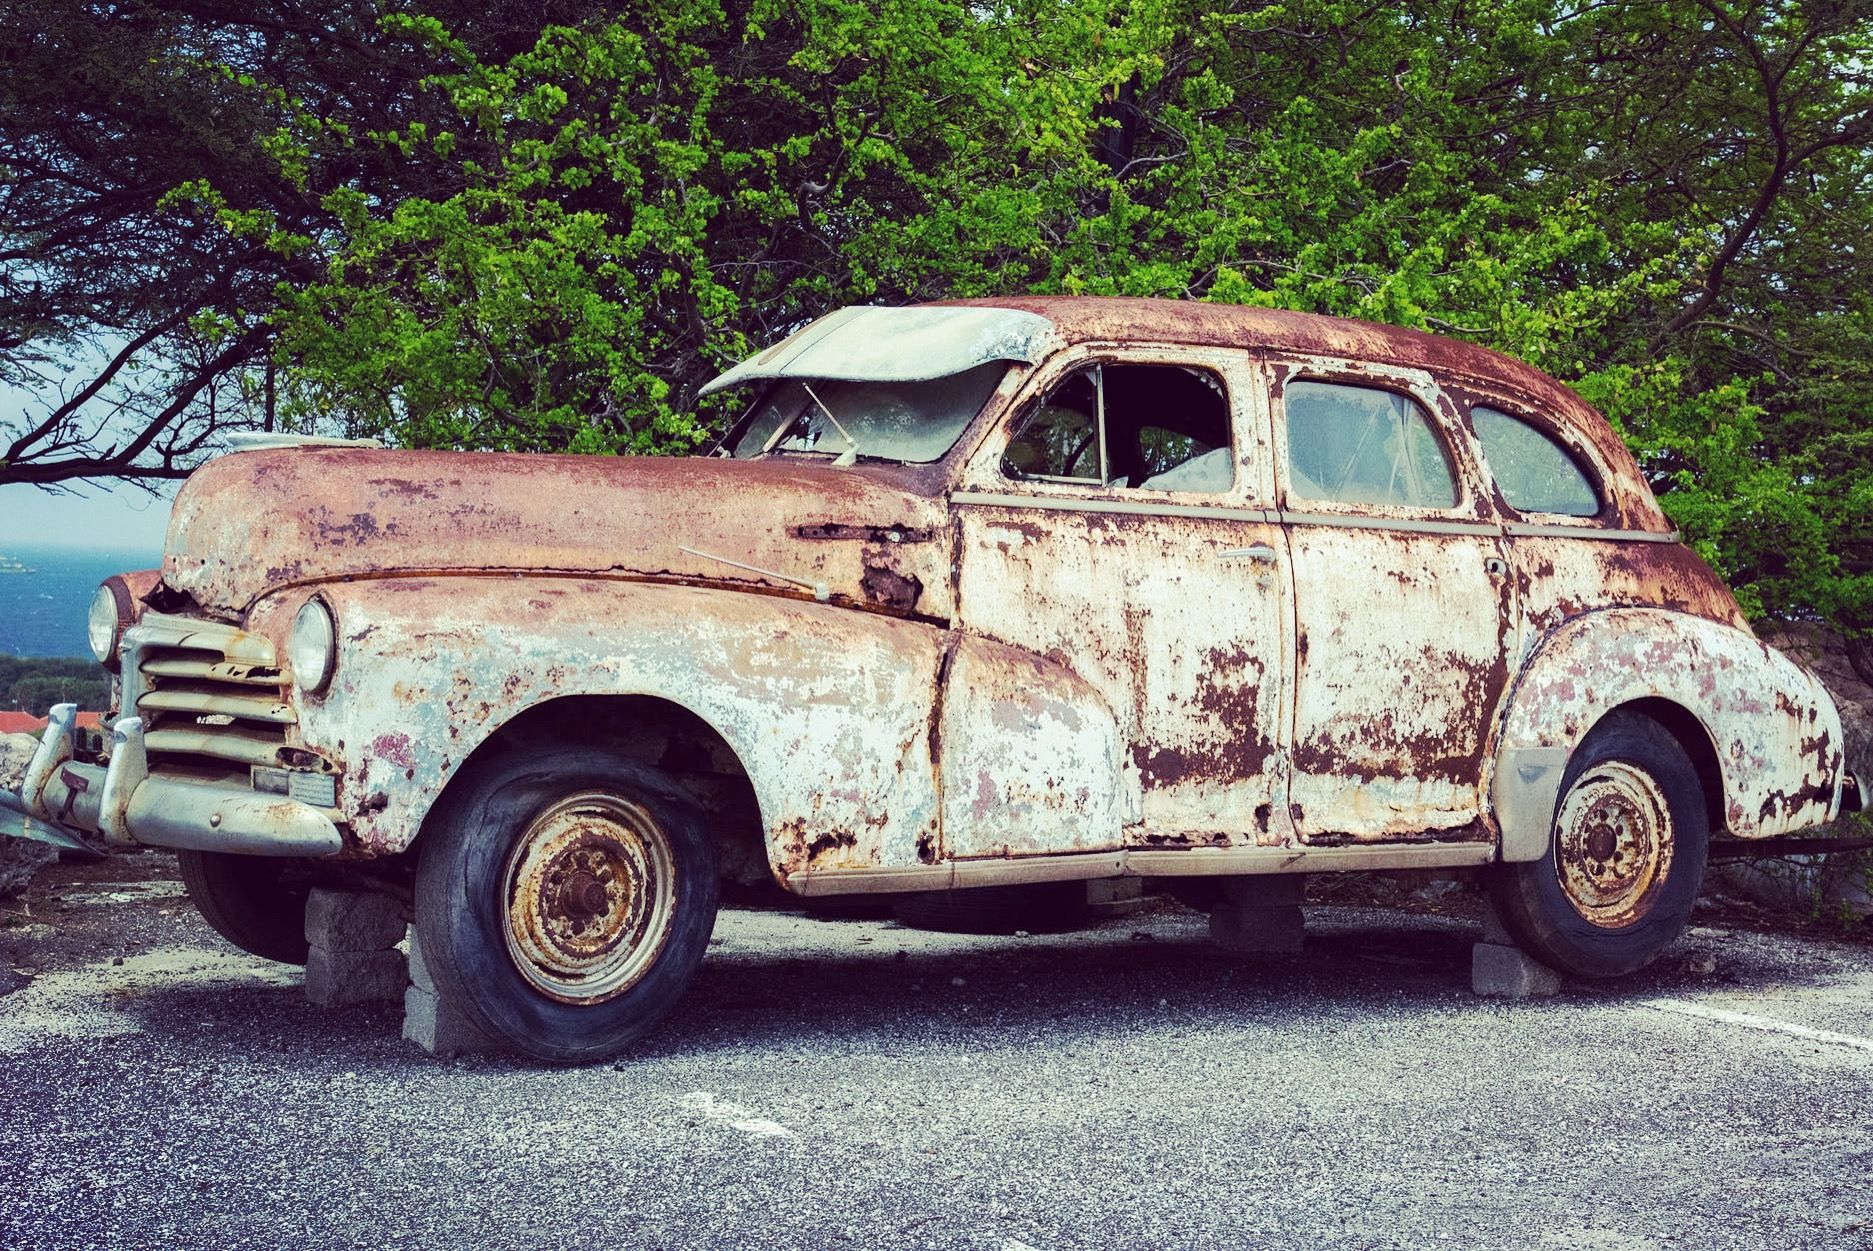 Got the Jalopy Blues? We got you! Apply for a car loan today and ...